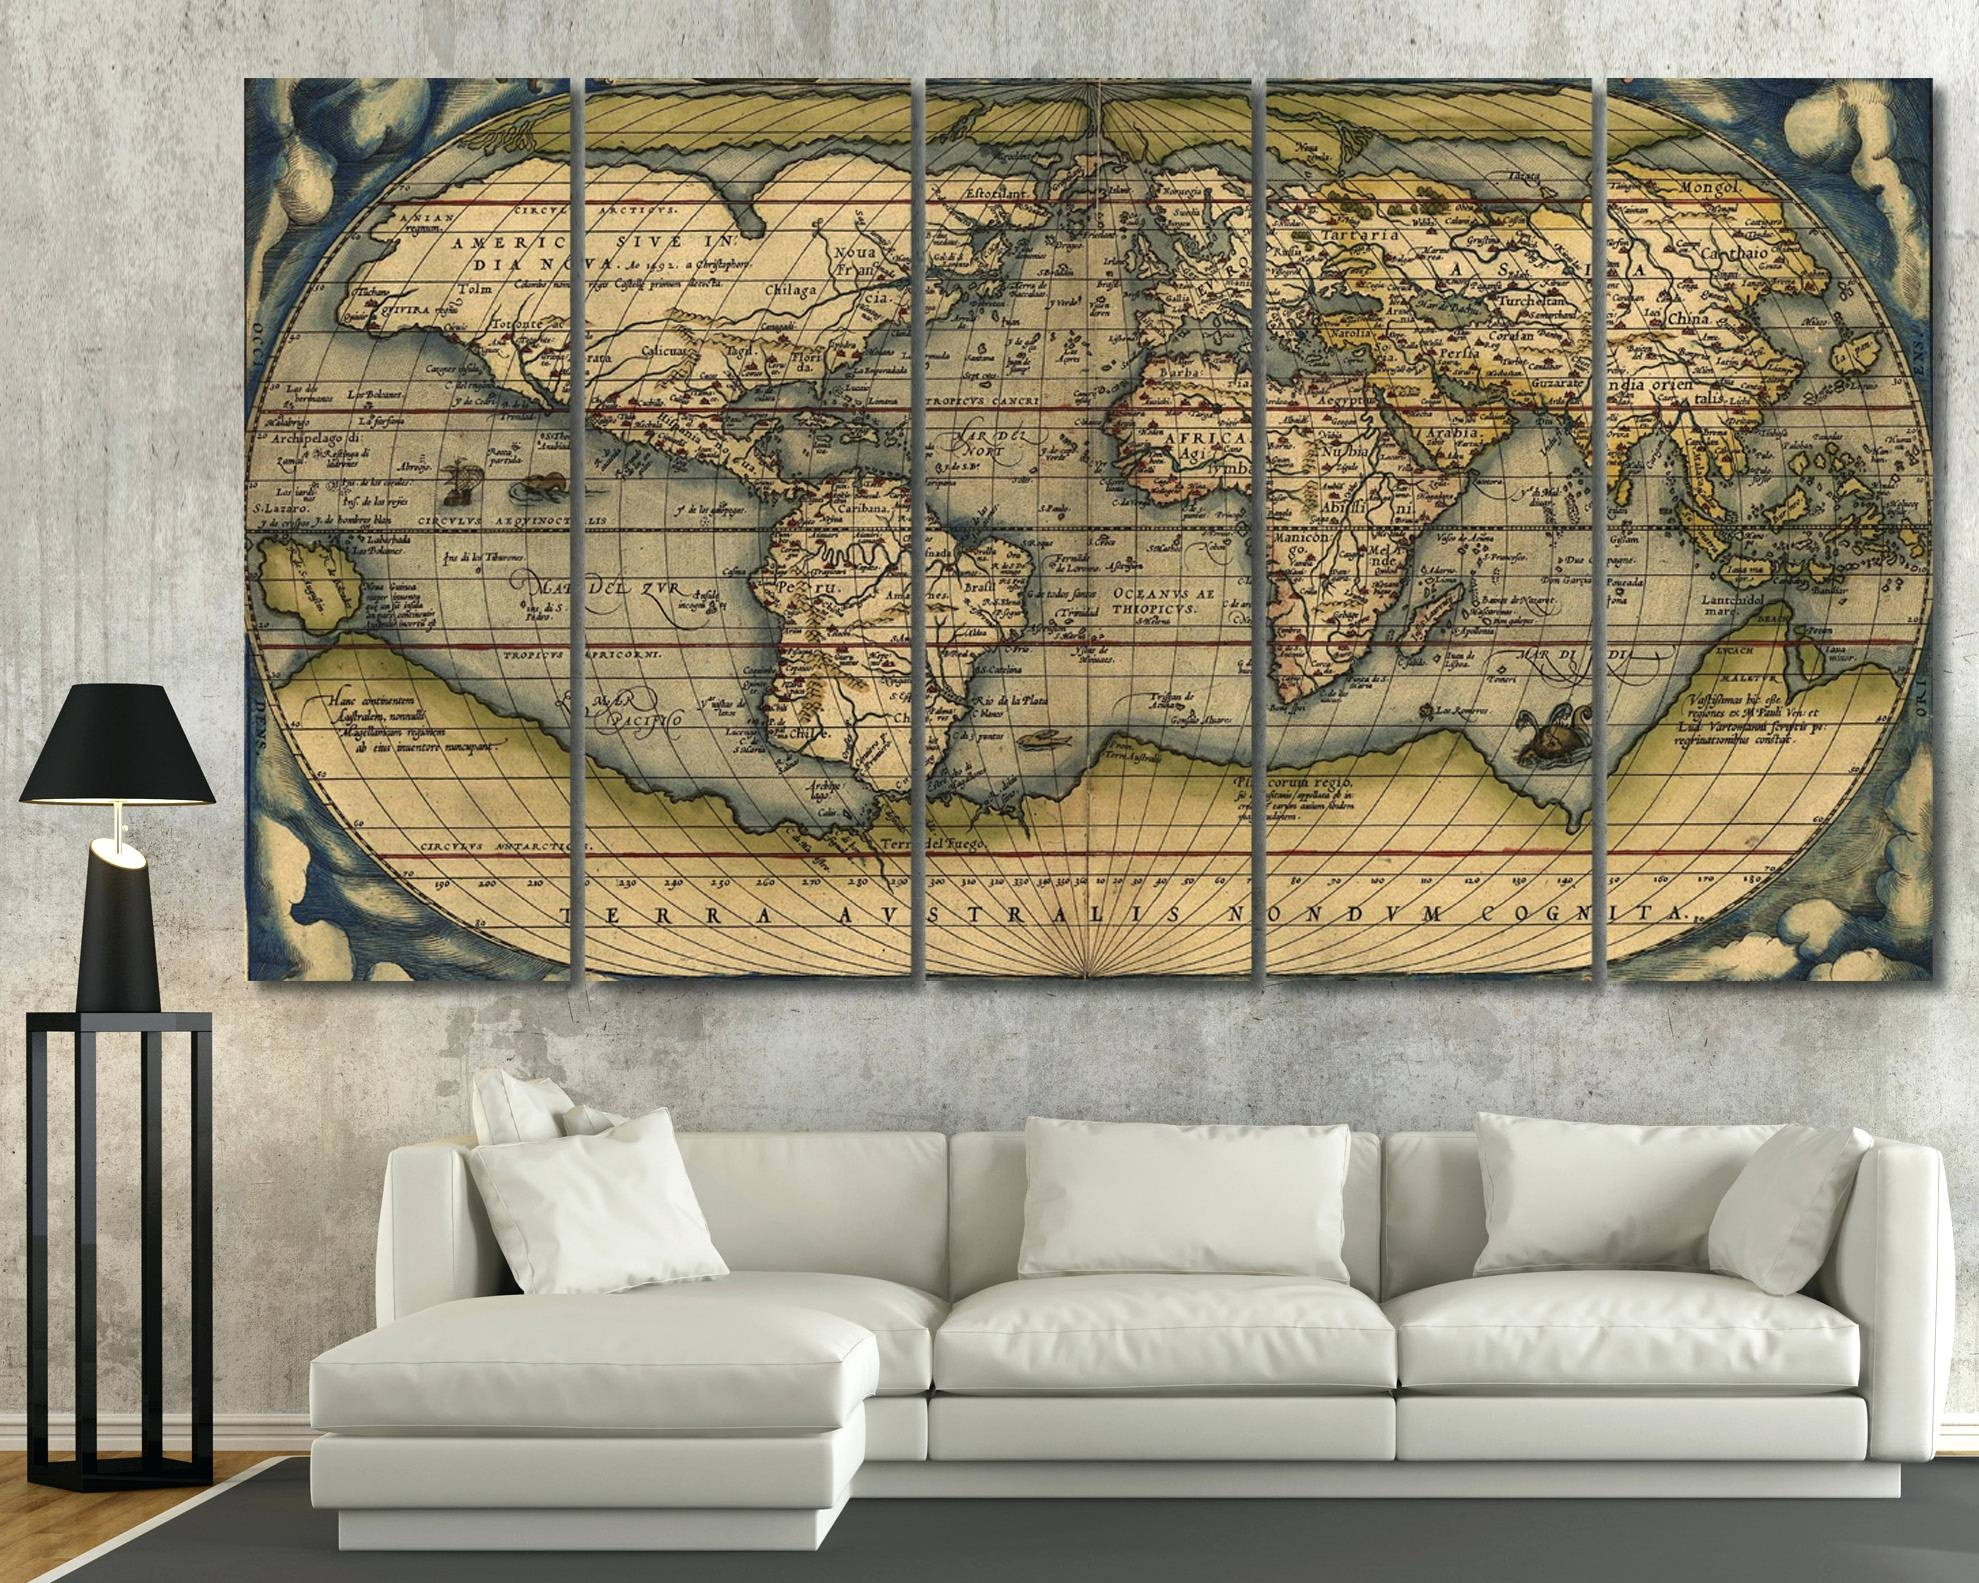 African Wooden Wall Art 20 The Best Africa Map Wall Art